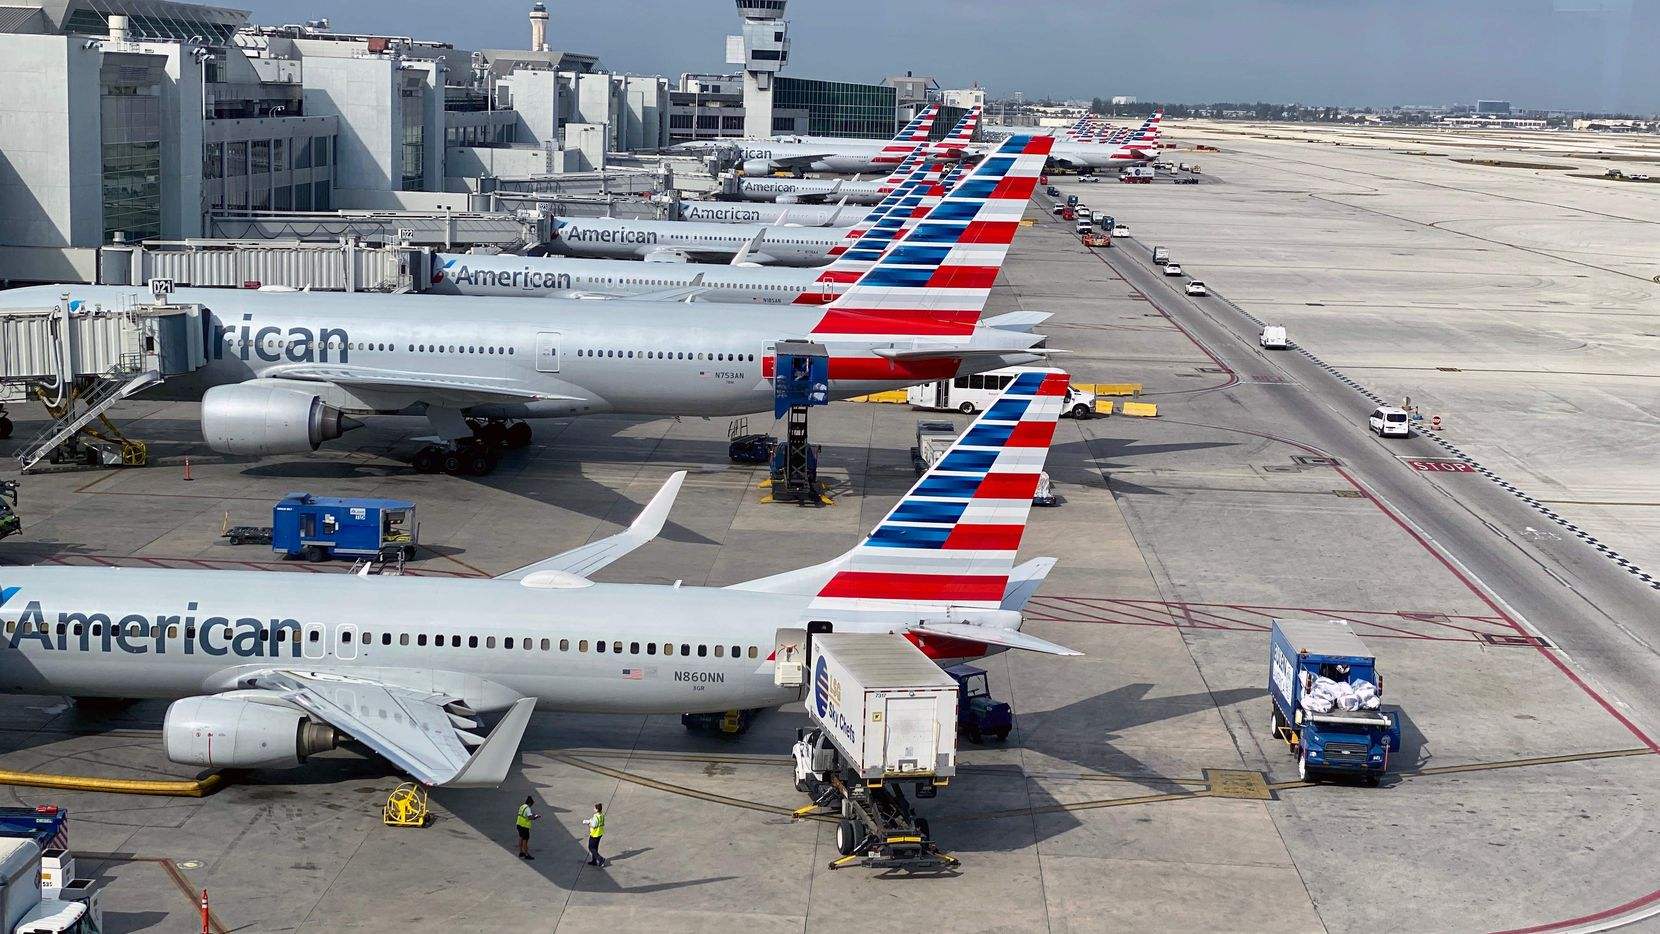 (FILES) In this file photo taken on March 03, 2020 American Airlines planes are seen at Miami International Airport (MIA) in Miami, Florida.  (Photo by DANIEL SLIM/AFP via Getty Images)